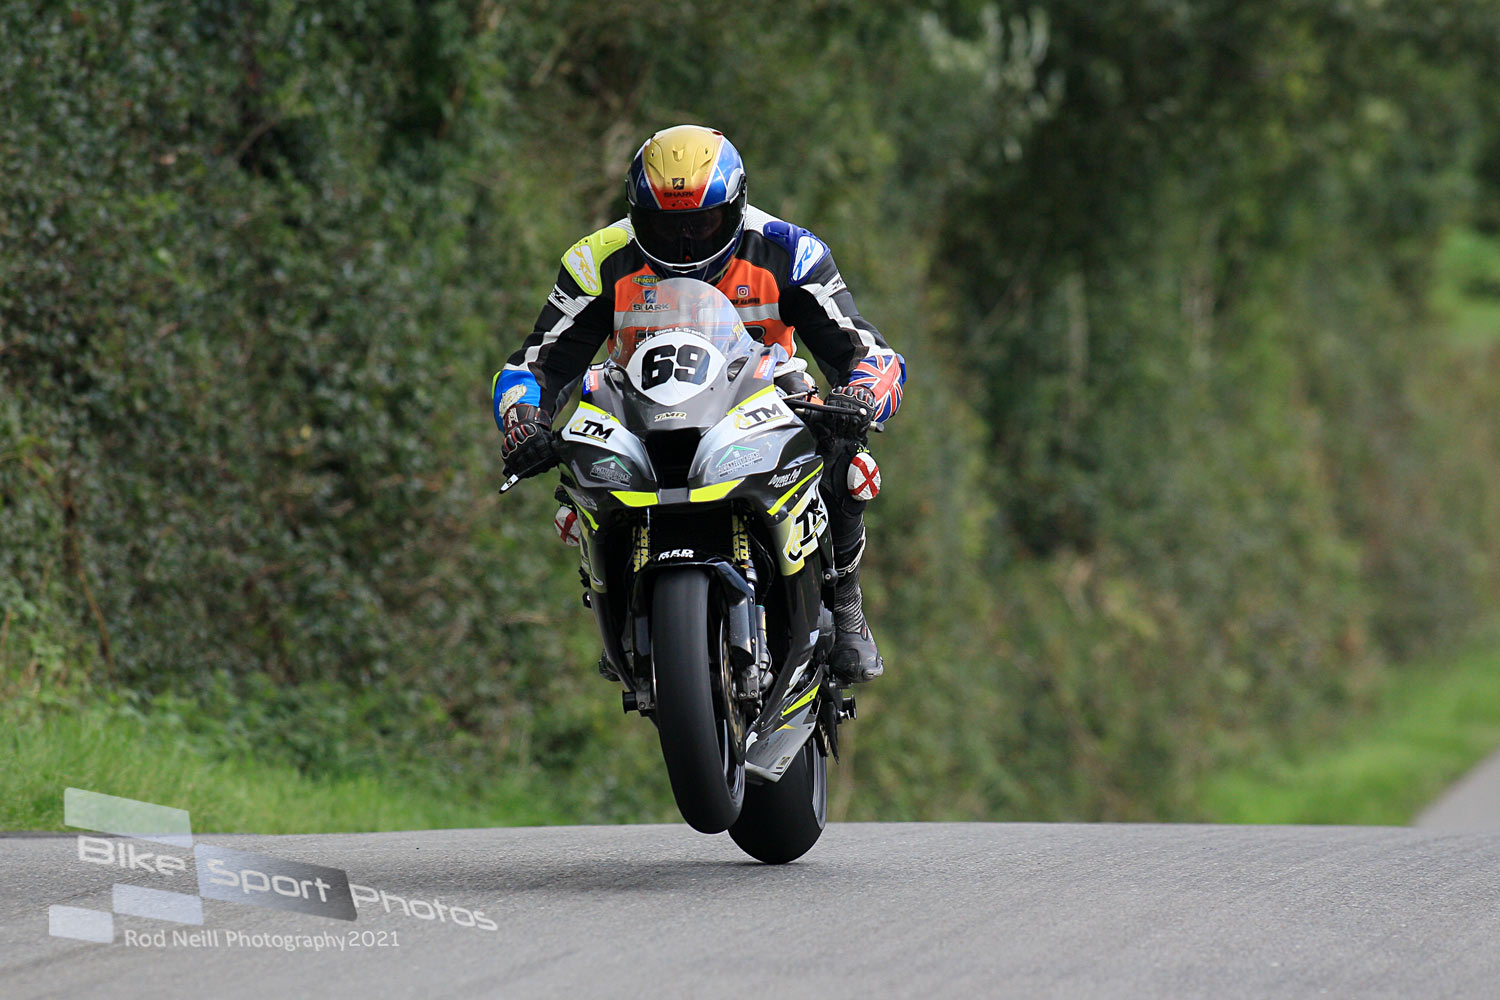 KDM Hire Cookstown 100: Friday Races Summary